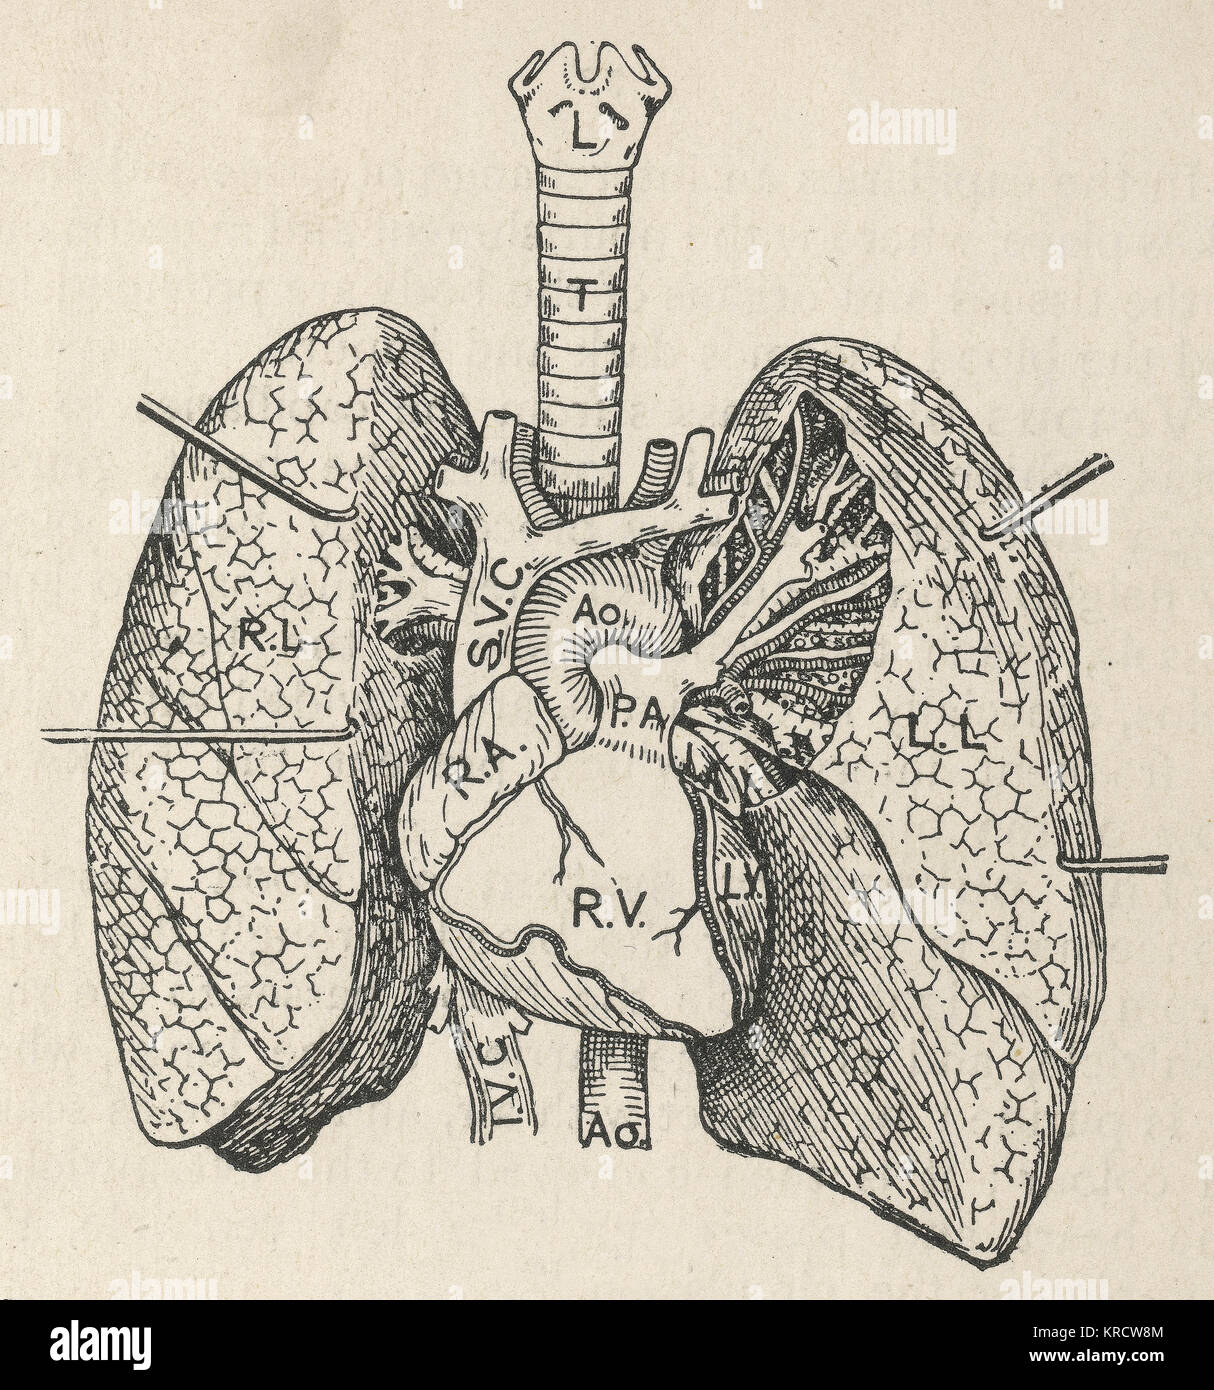 Human lungs heart and trachea stock photos human lungs heart and diagram of the heart lungs and windpipe date 1908 stock image ccuart Images